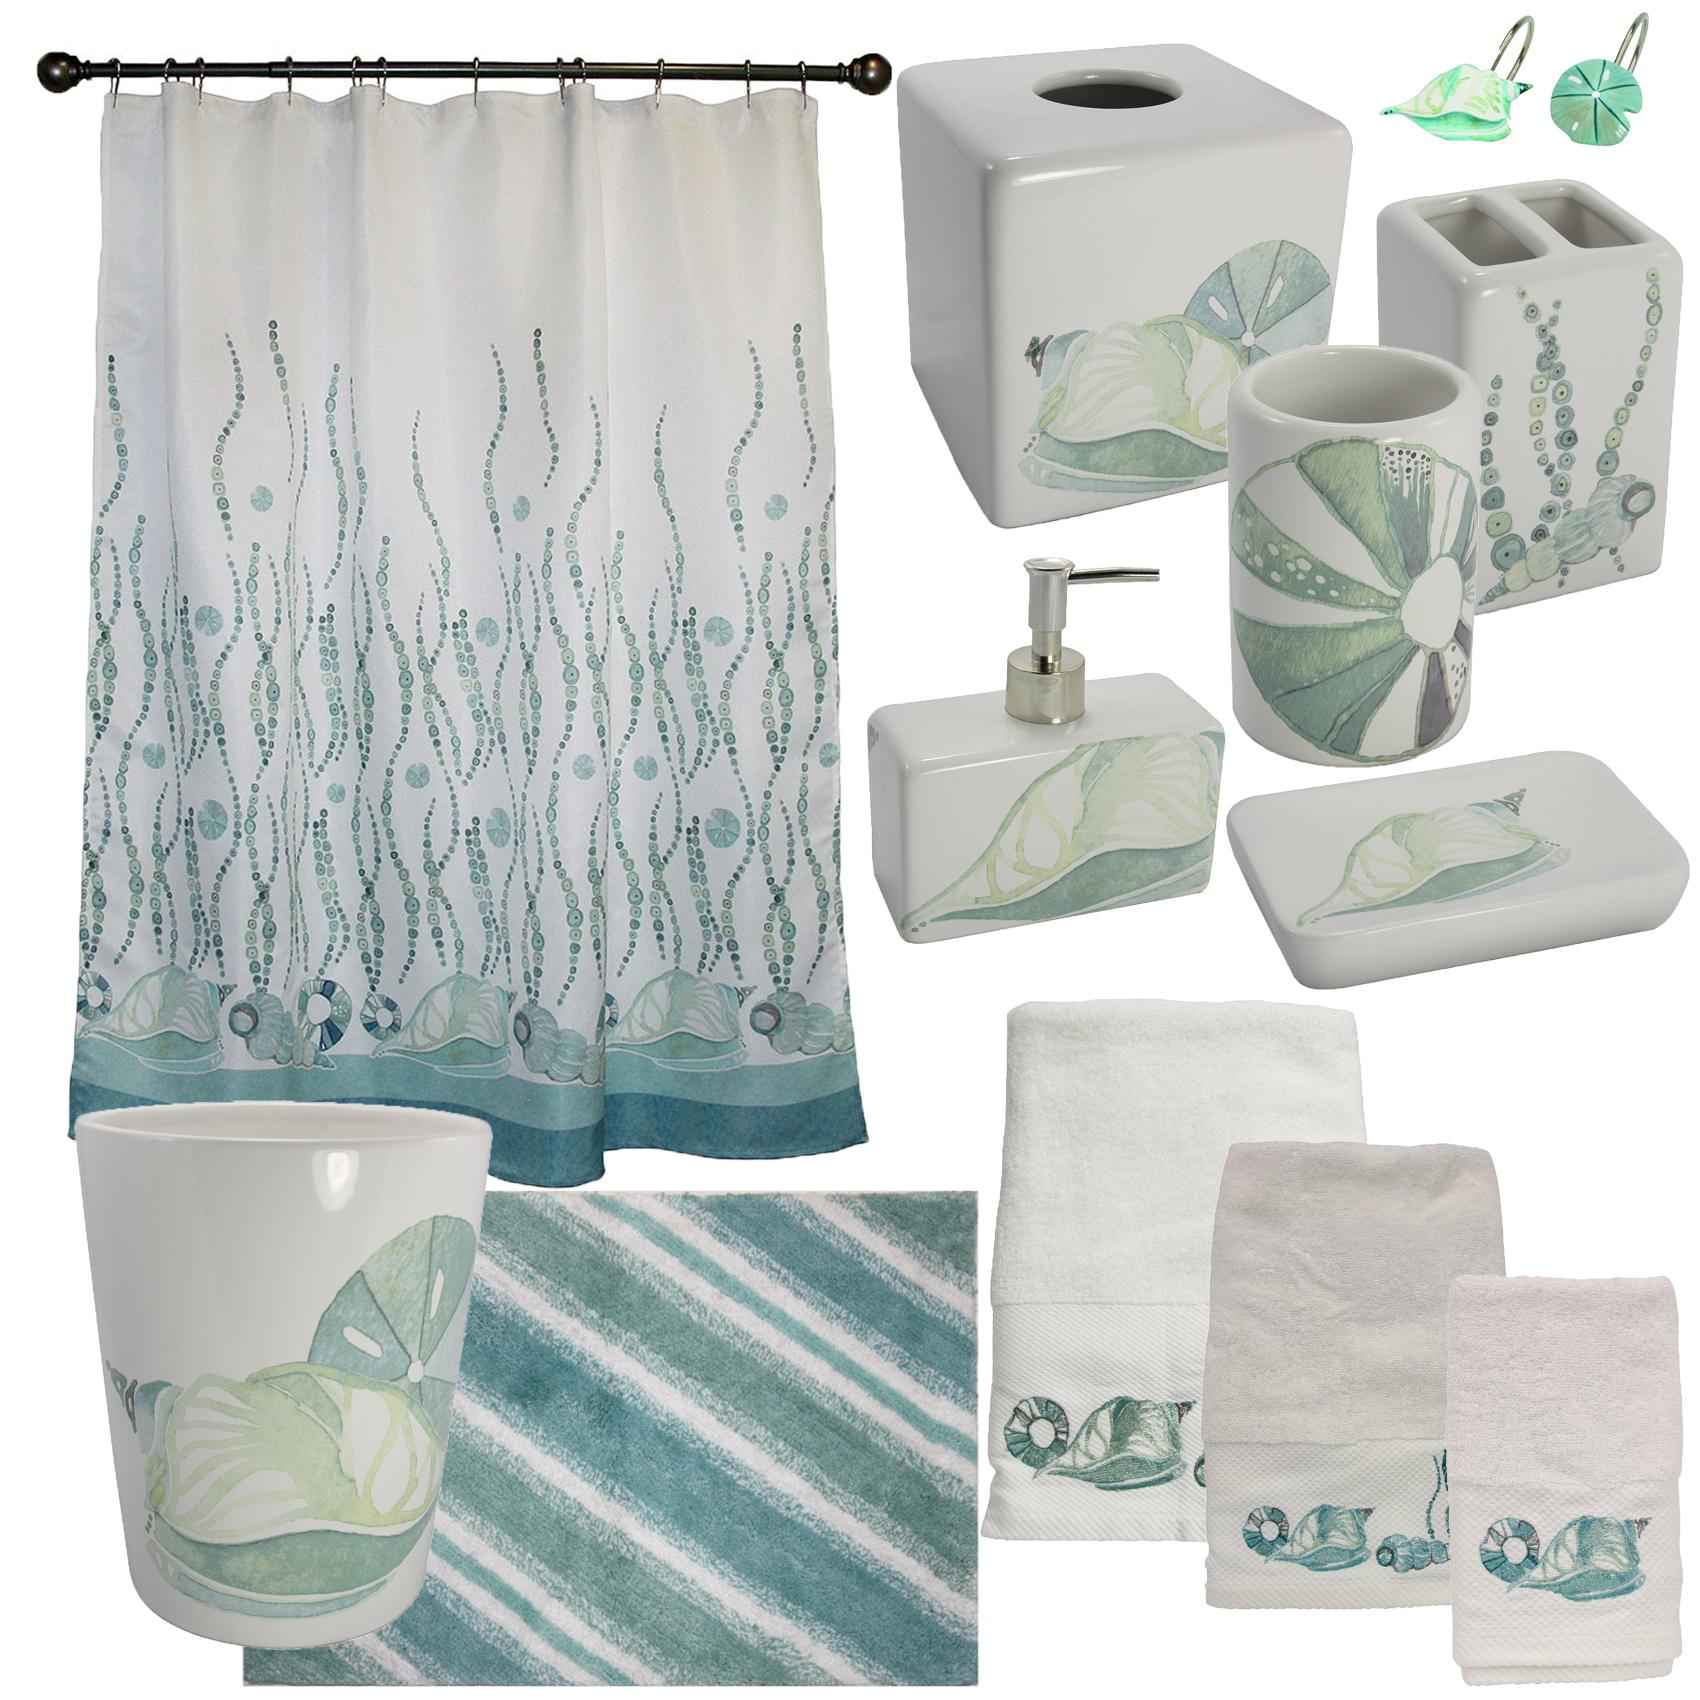 Amazon.com: Bacova Guild La Mer Bath Accessories: Home & Kitchen